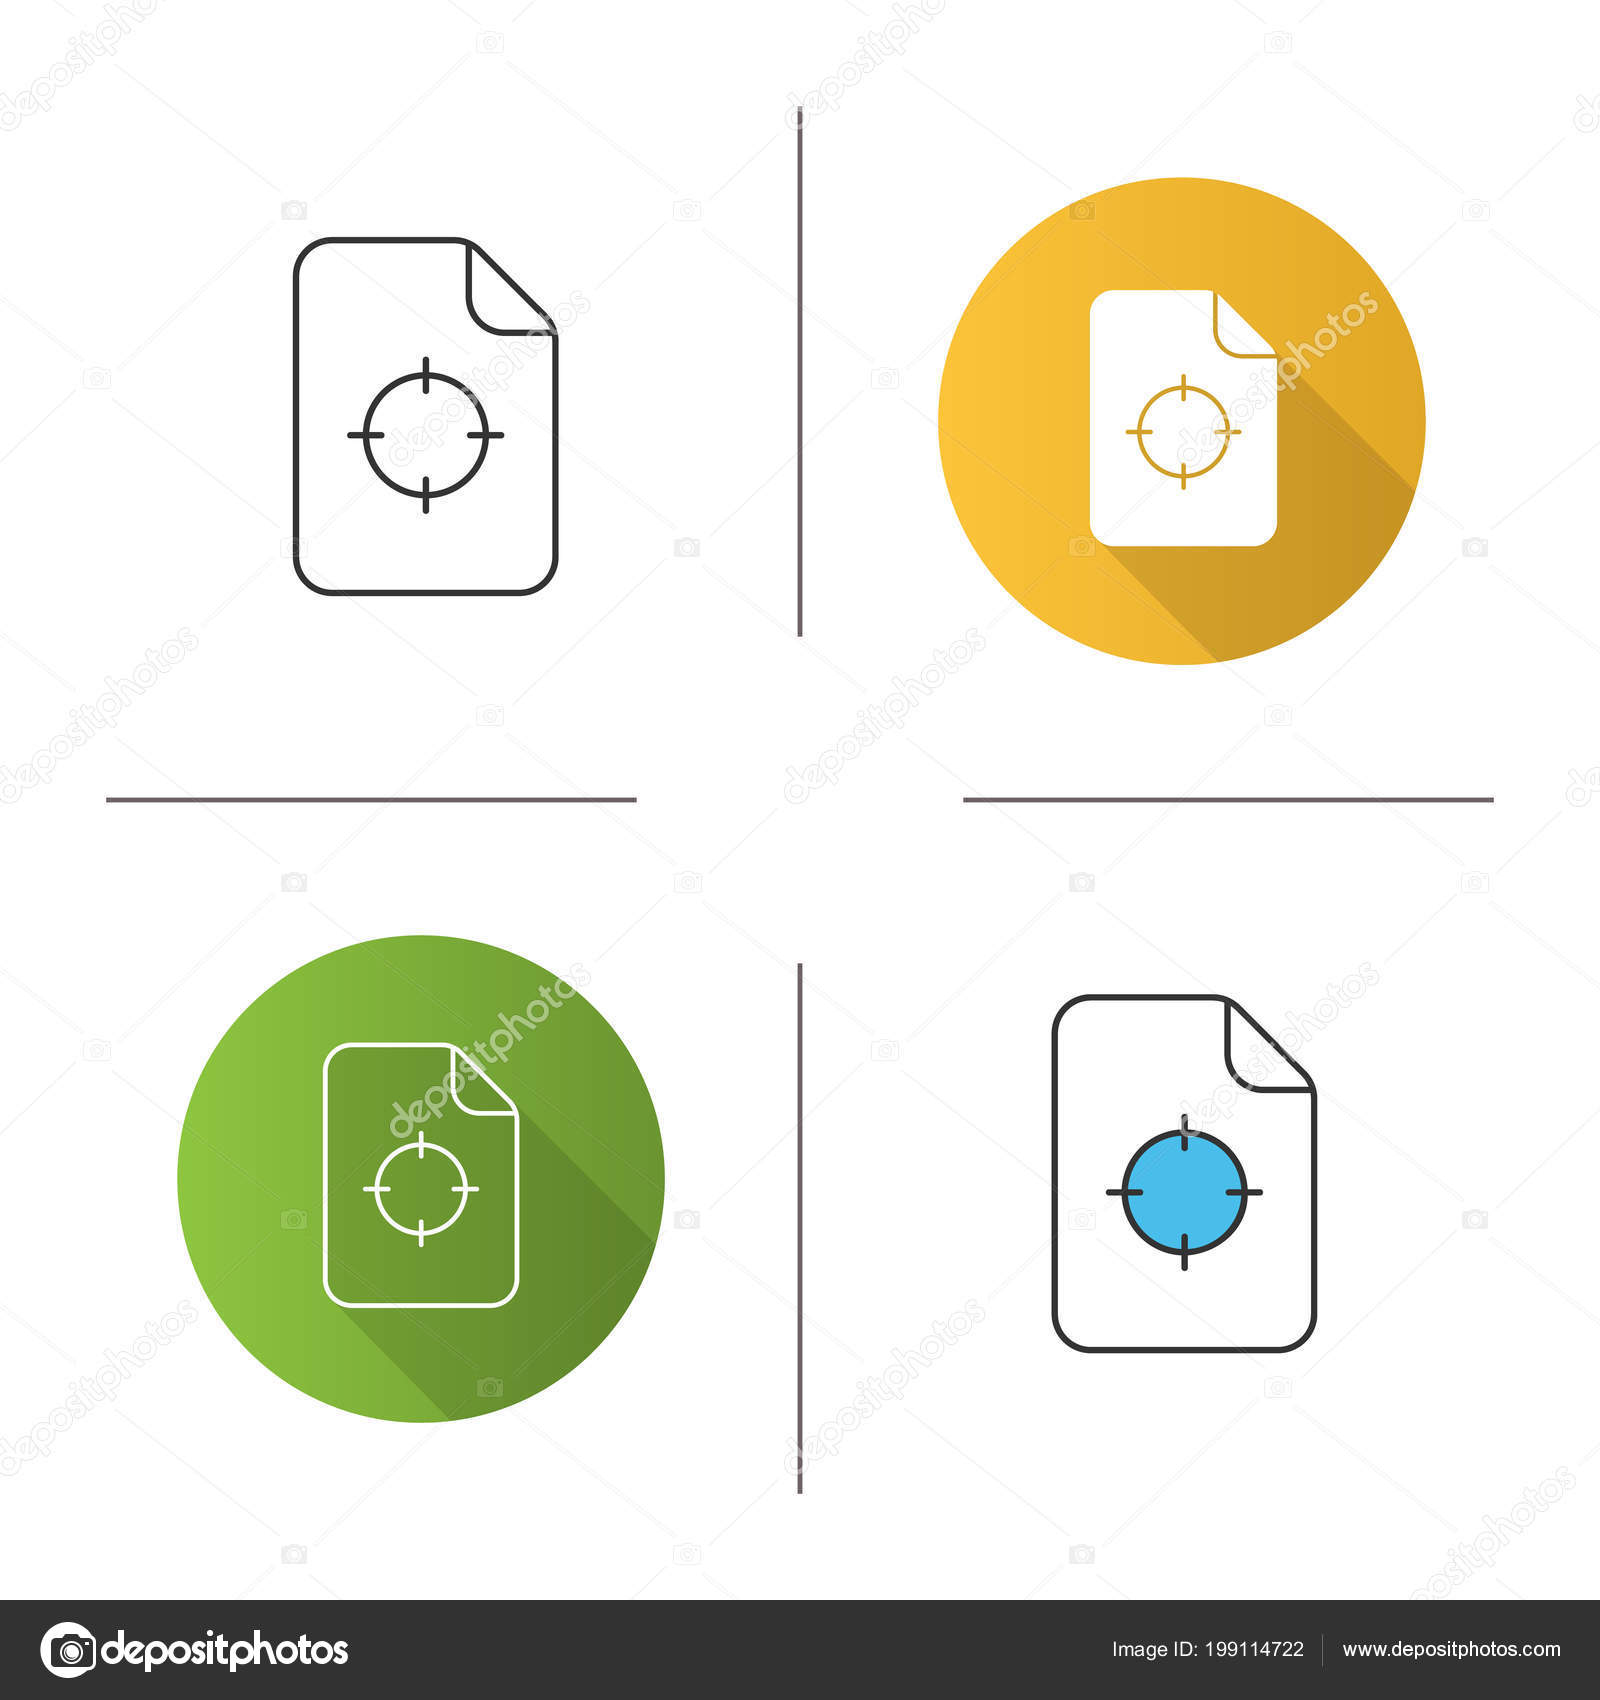 Printing Registration Mark Icon Cmyk Quality Control Flat Design